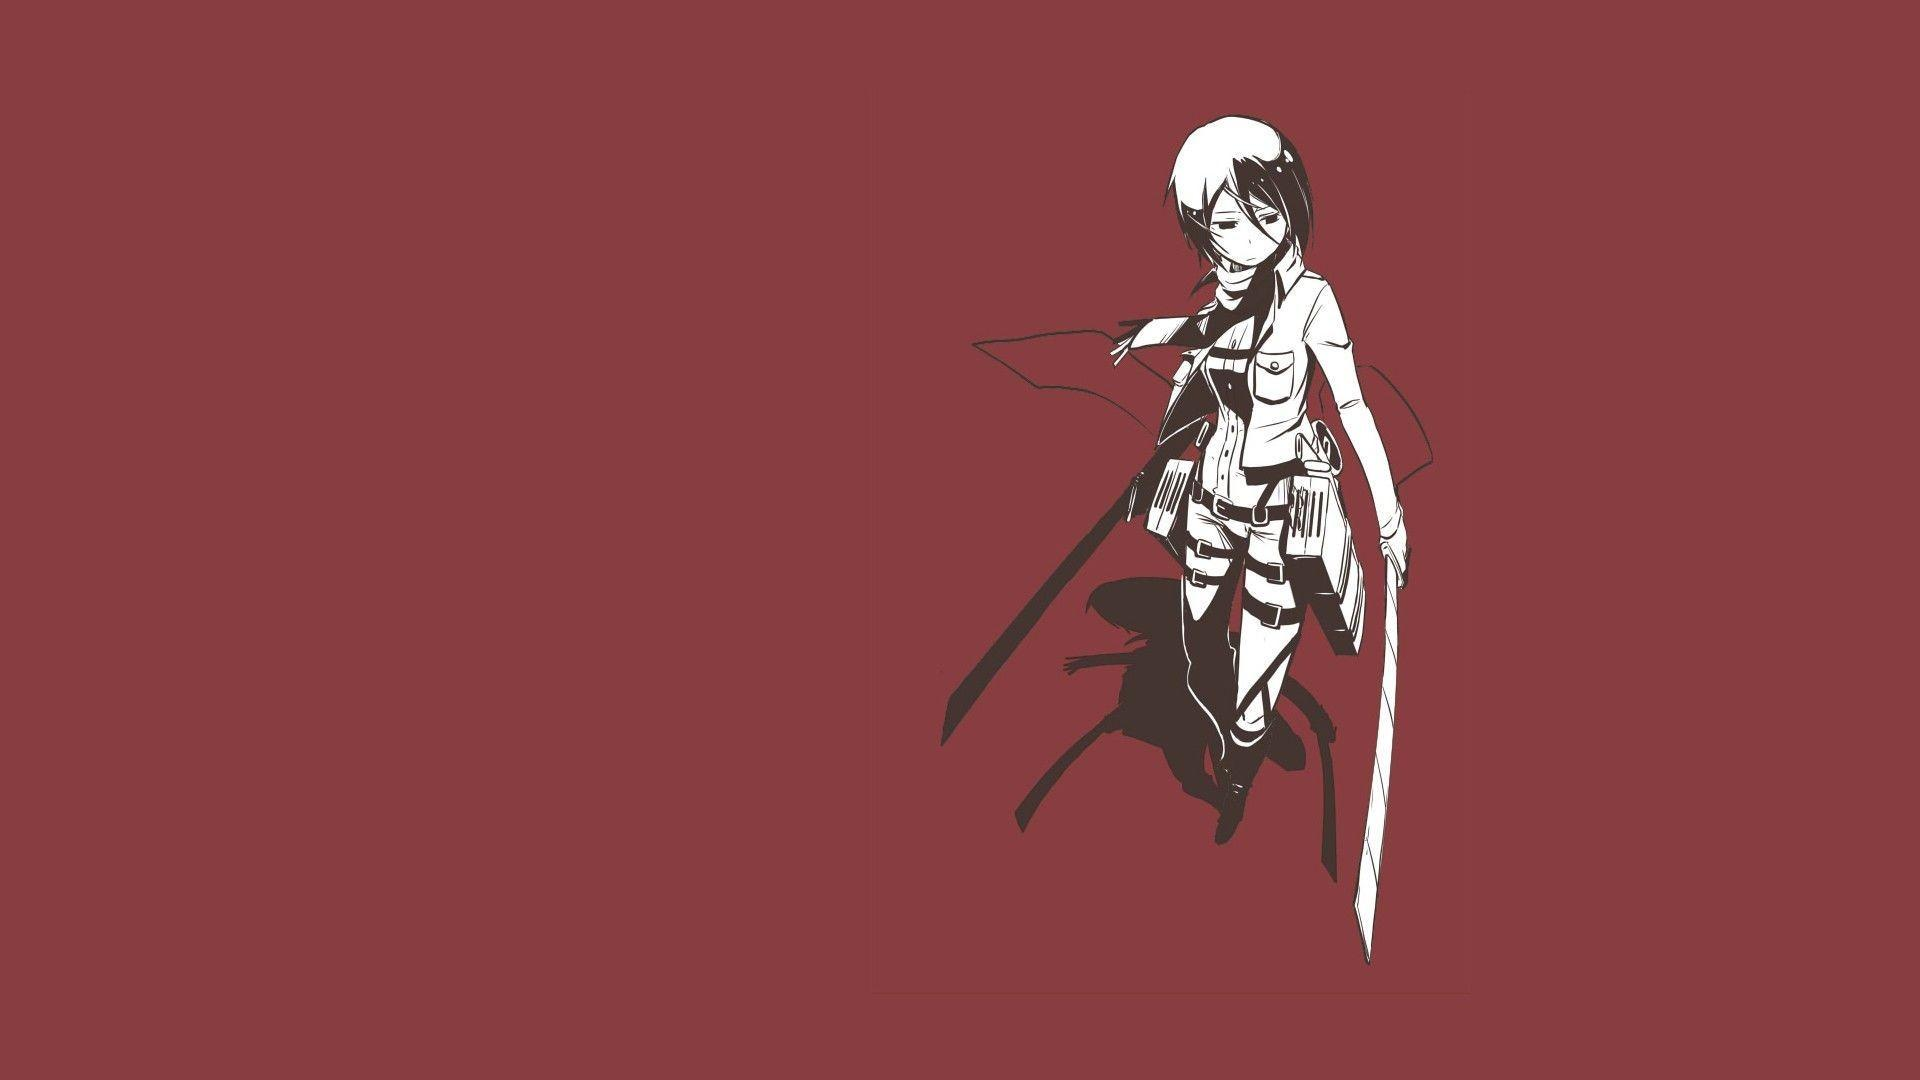 Attack on titan · eren yeager · minimalist; Attack On Titan Aesthetic Wallpapers - Top Free Attack On ...